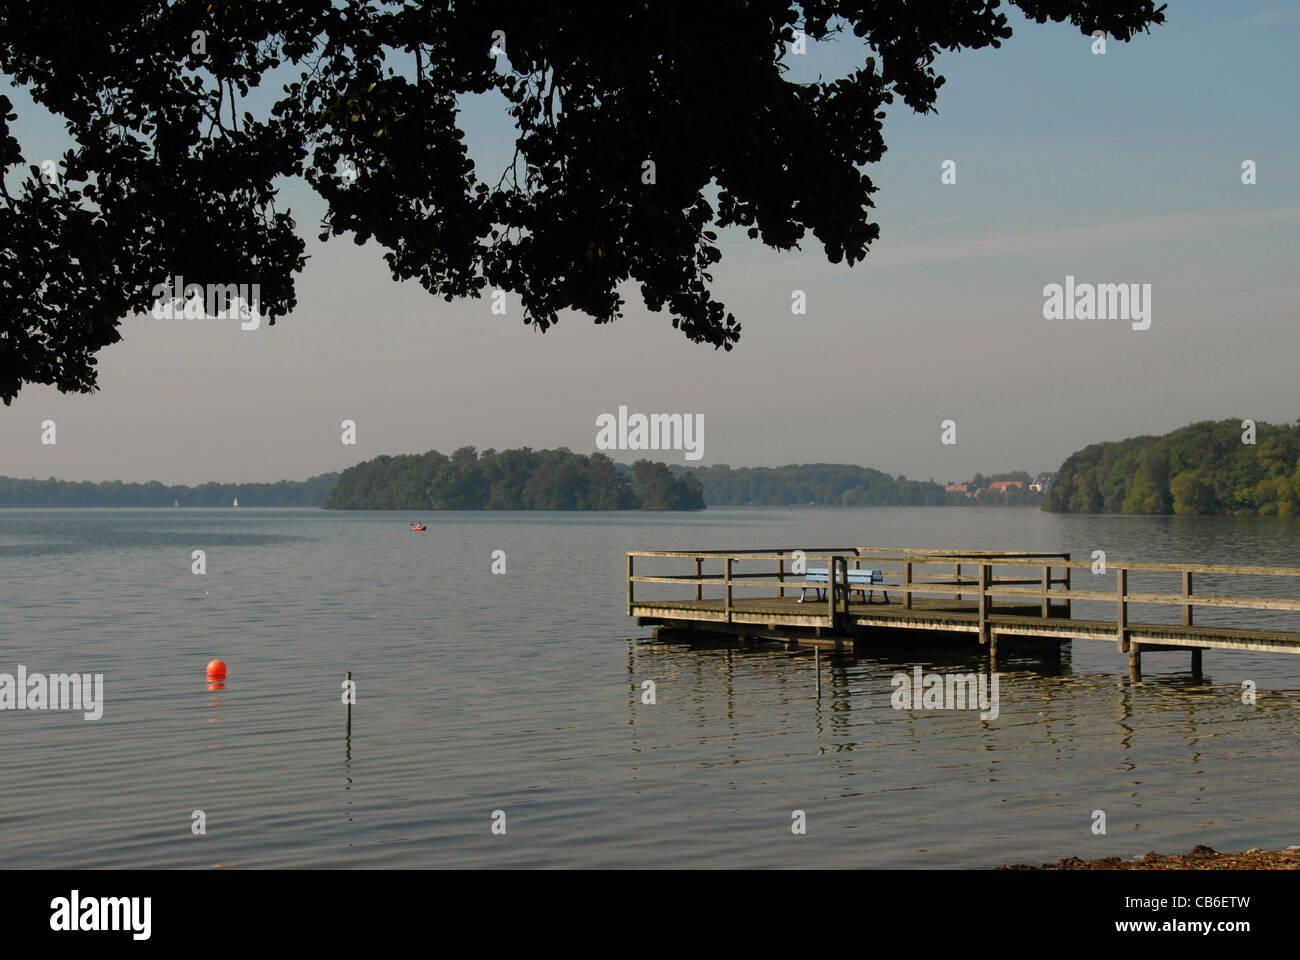 Bathing and boating pier at Großer Plöner See, largest of the lakes near Plön in Schleswig-Holstein, - Stock Image